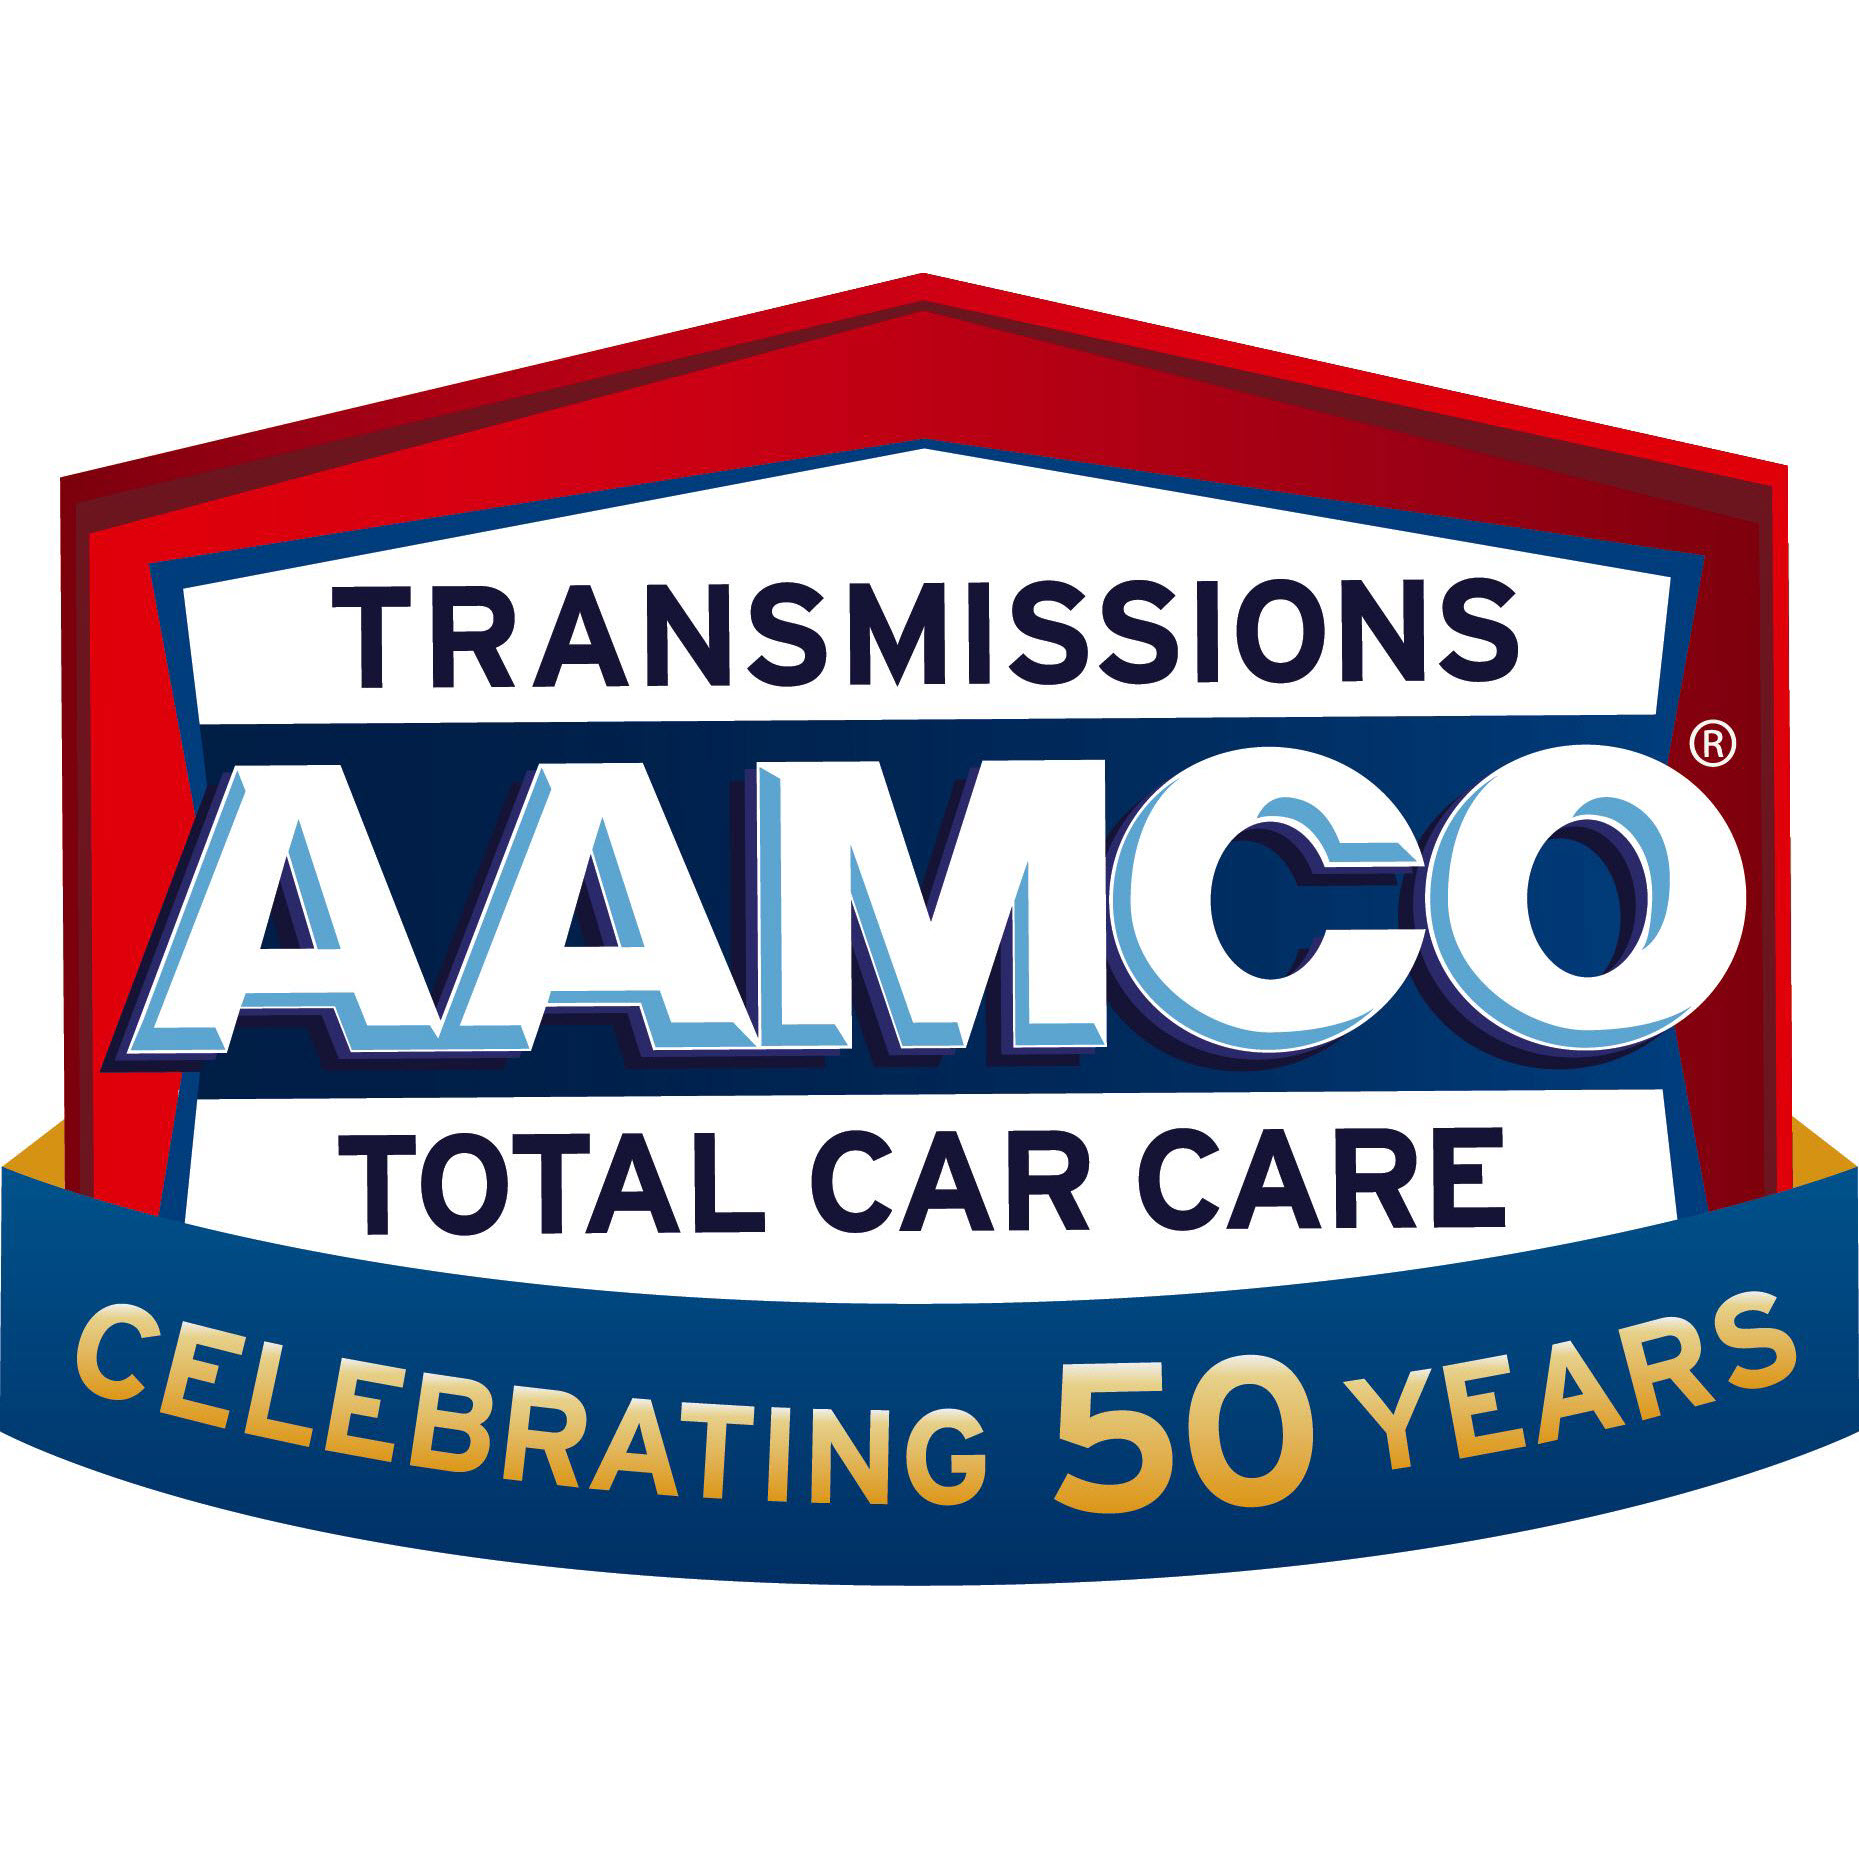 AAMCO Transmissions and Total Car Care - Bronx, NY - Transmission Repair Shops